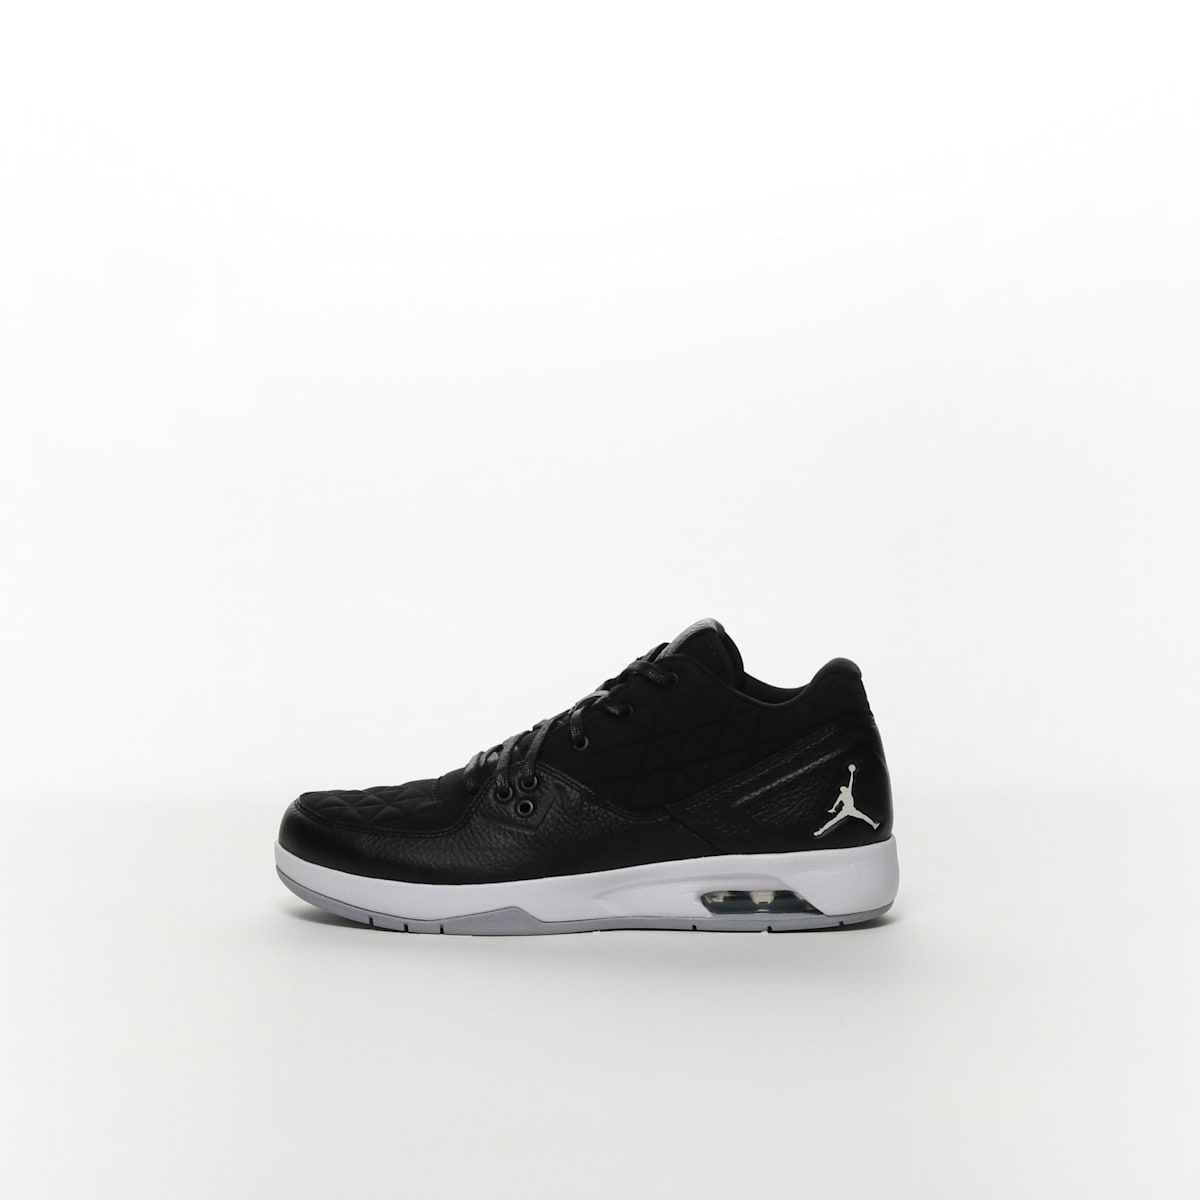 41911d728af794 Men s Jordan Clutch Shoe - BLACK WHITE – Resku